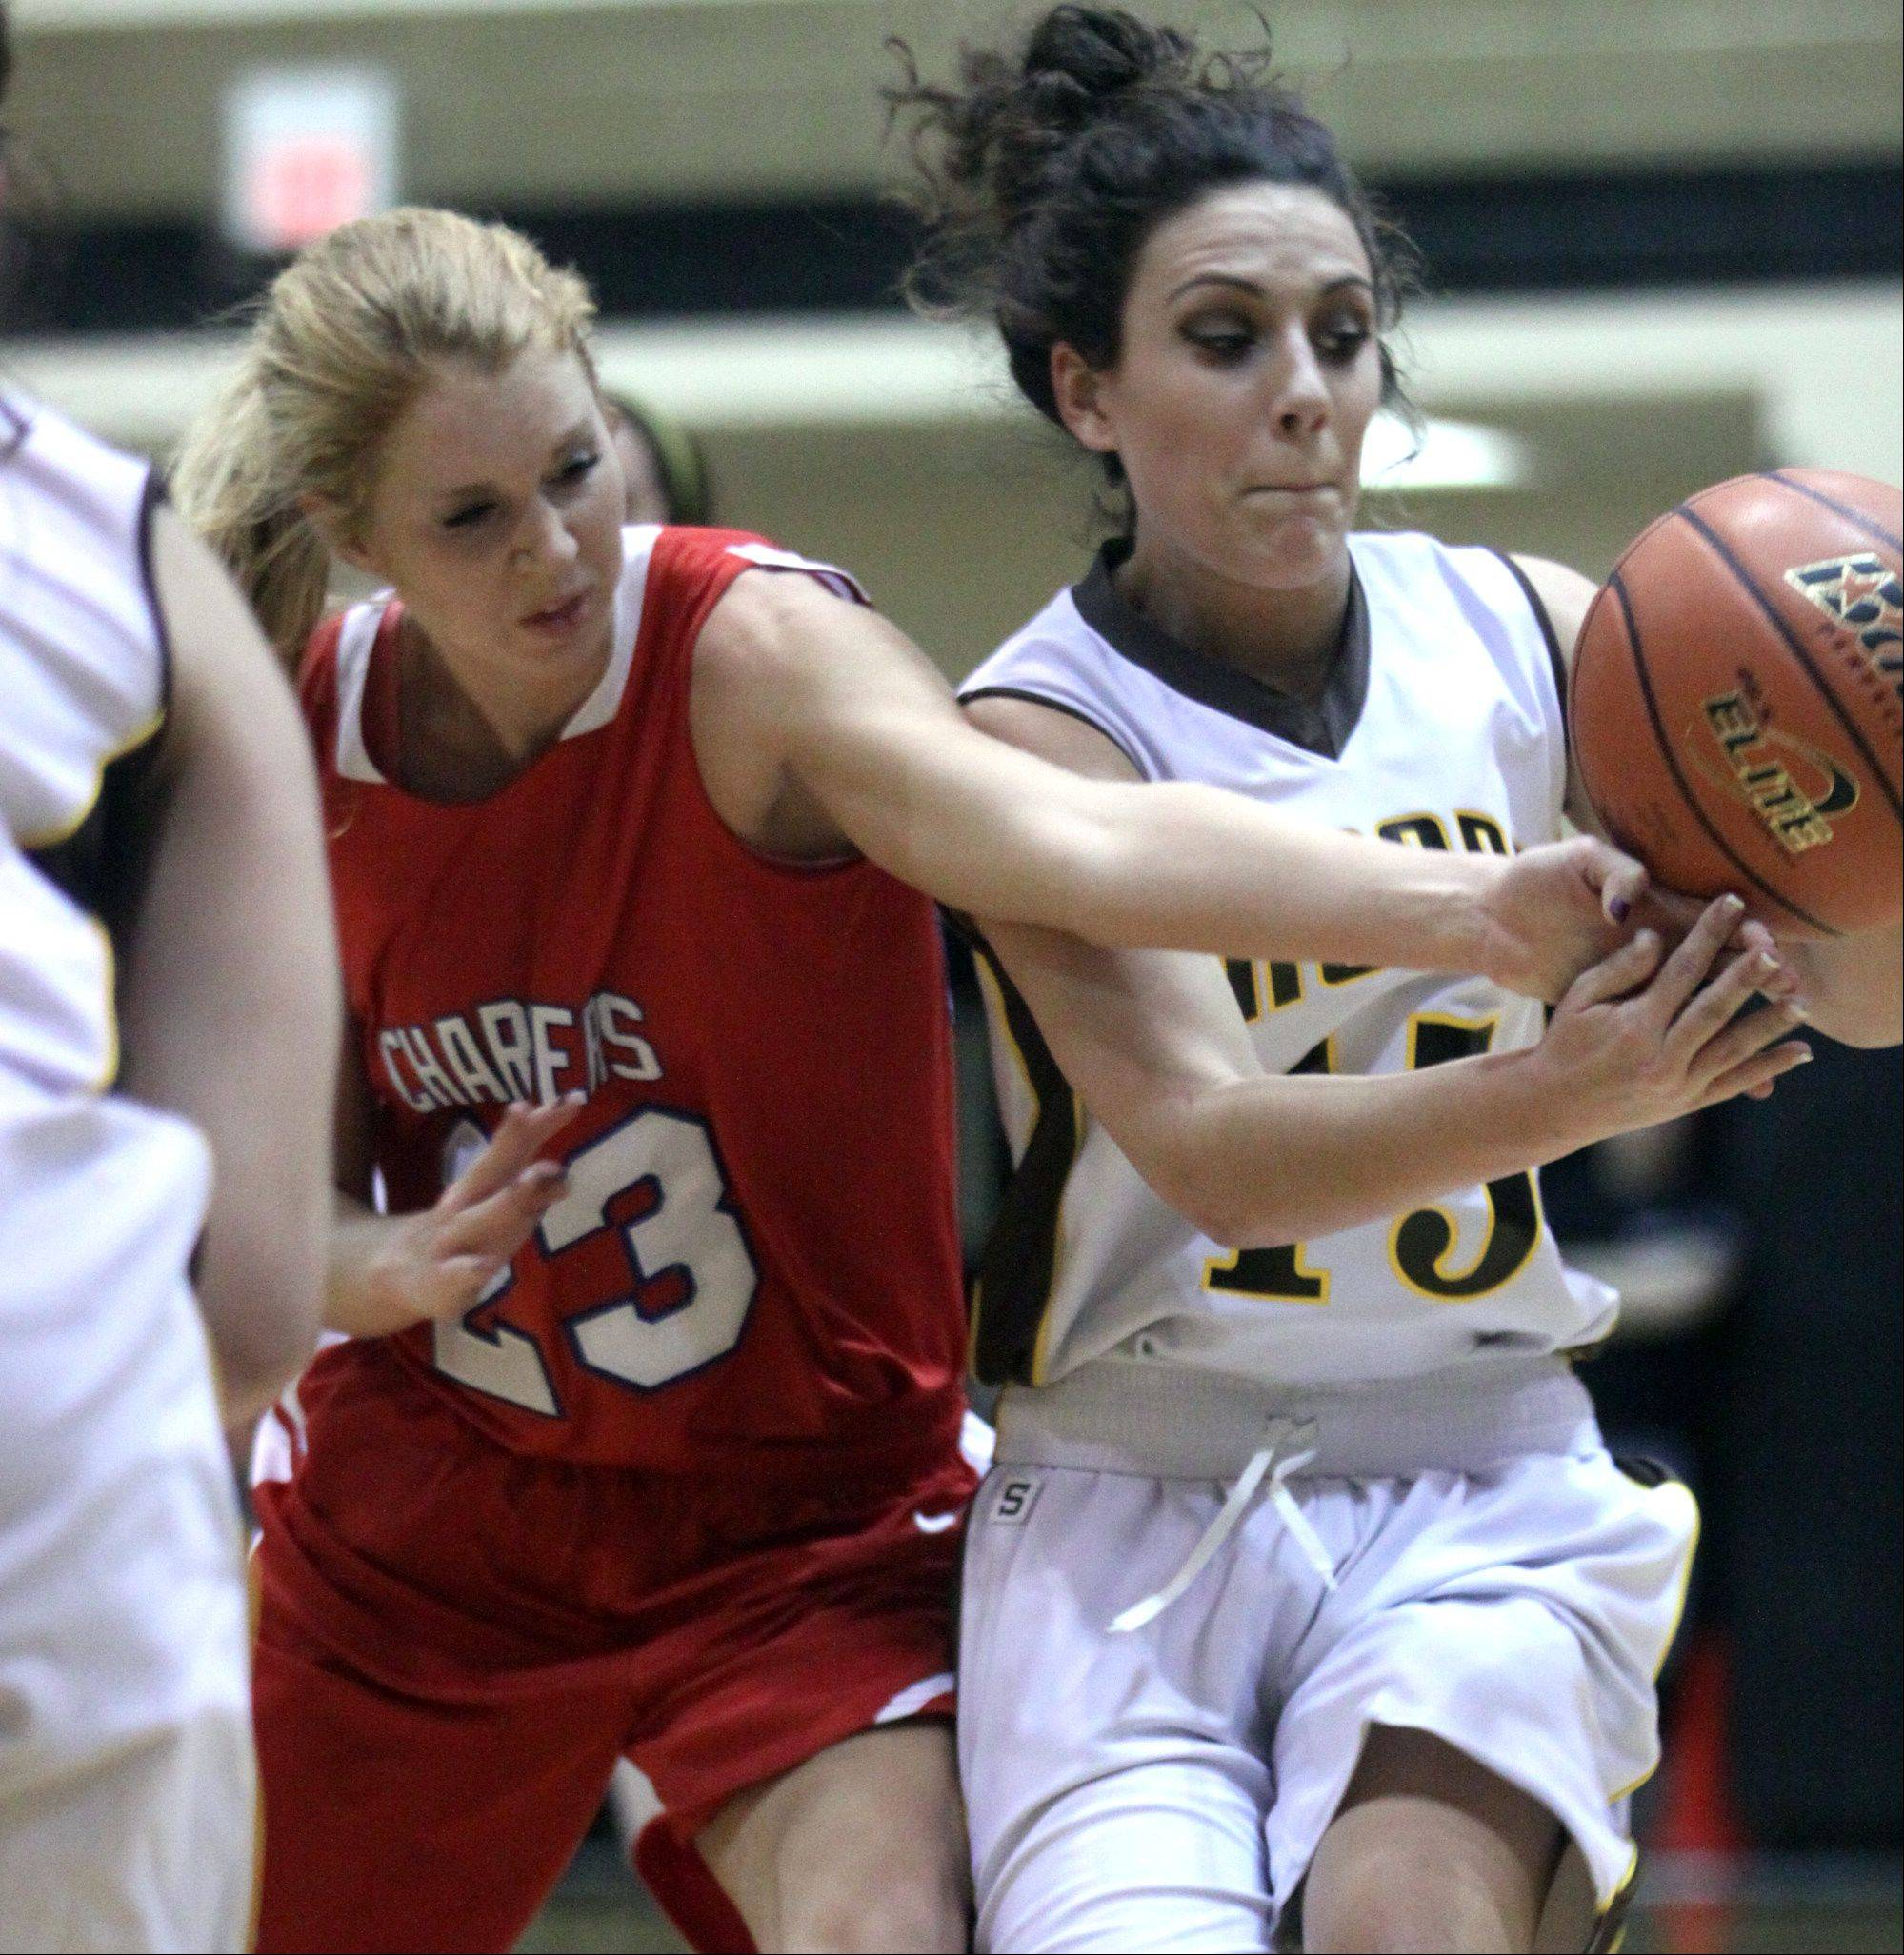 Images from the Jacobs vs. Dundee-Crown girls regional basketball game Monday, February 11, 2013.